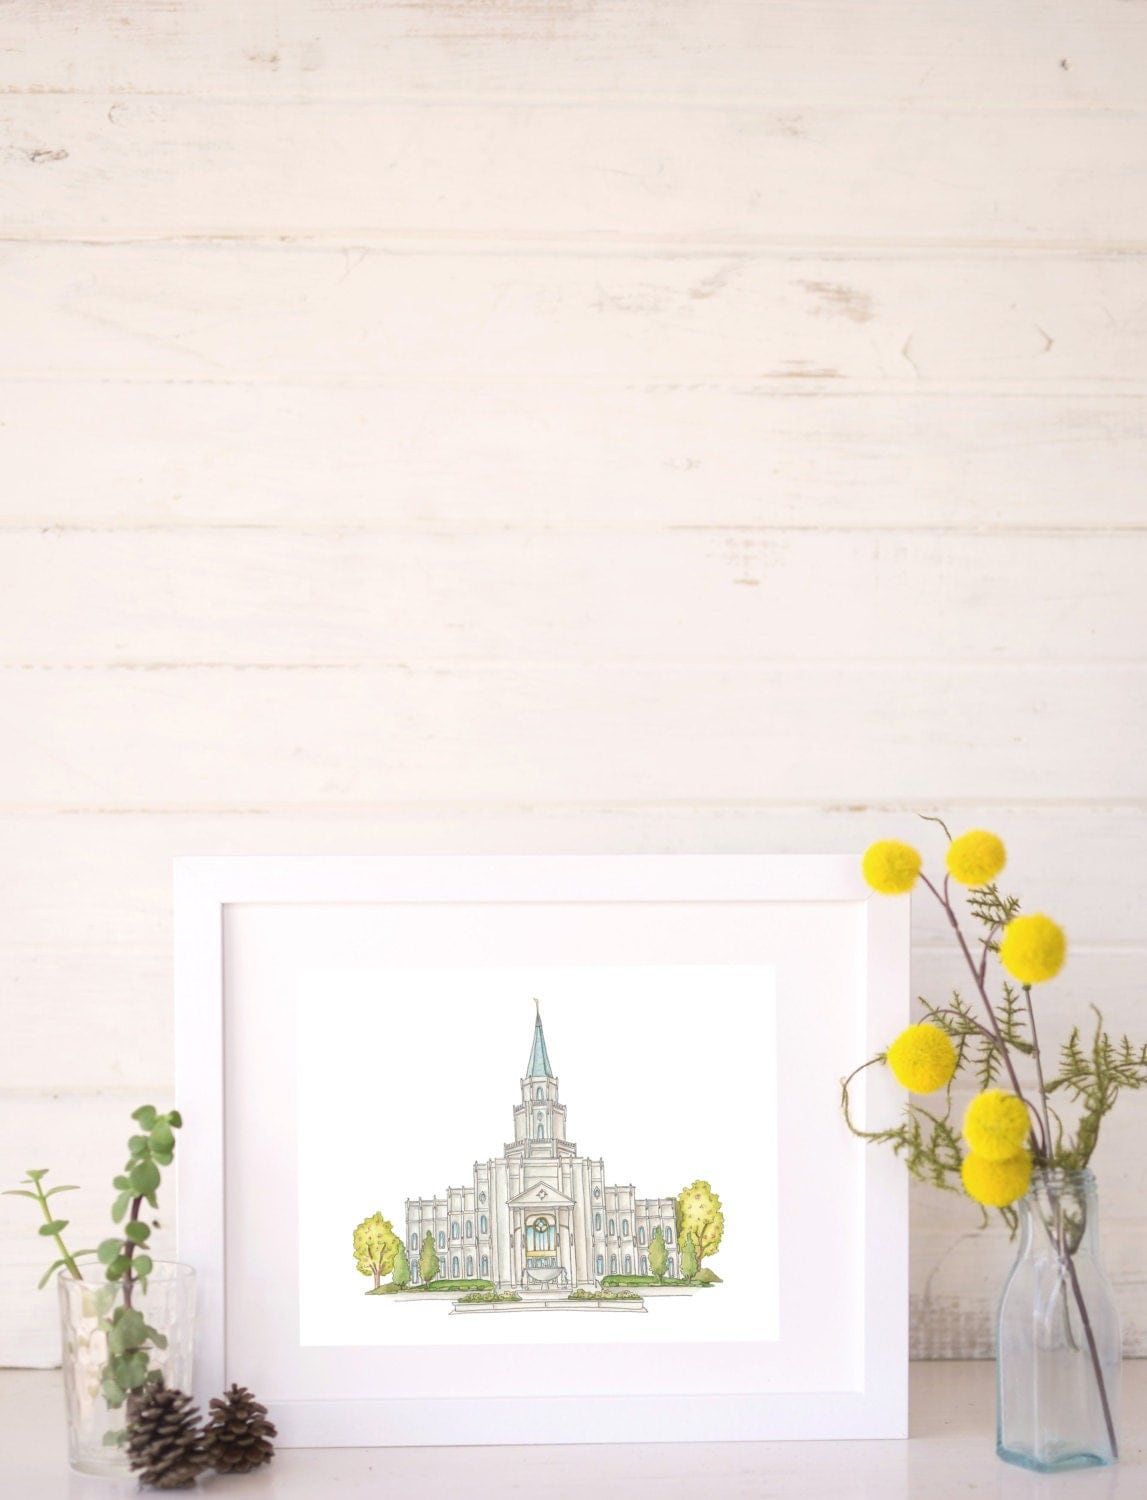 Lds temple ornaments - Houston Texas Lds Temple Water Color Painting